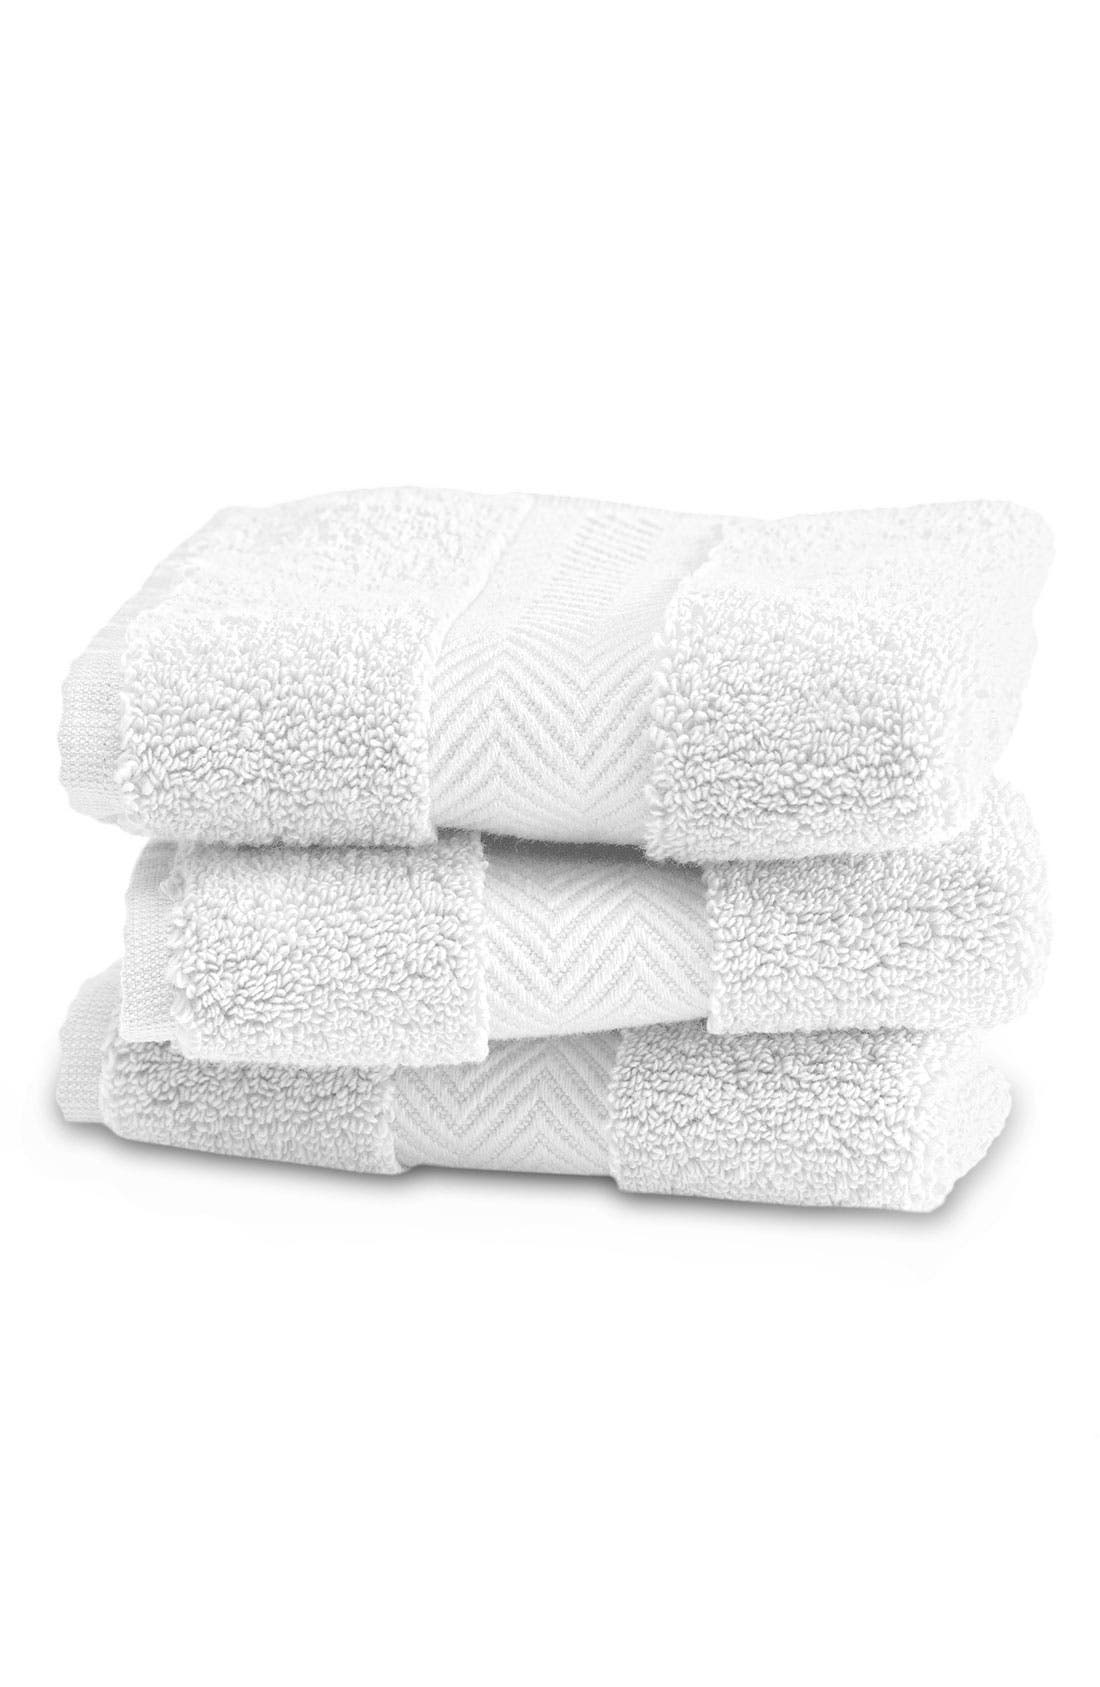 Hydrocotton Hand Towel,                             Alternate thumbnail 3, color,                             WHITE